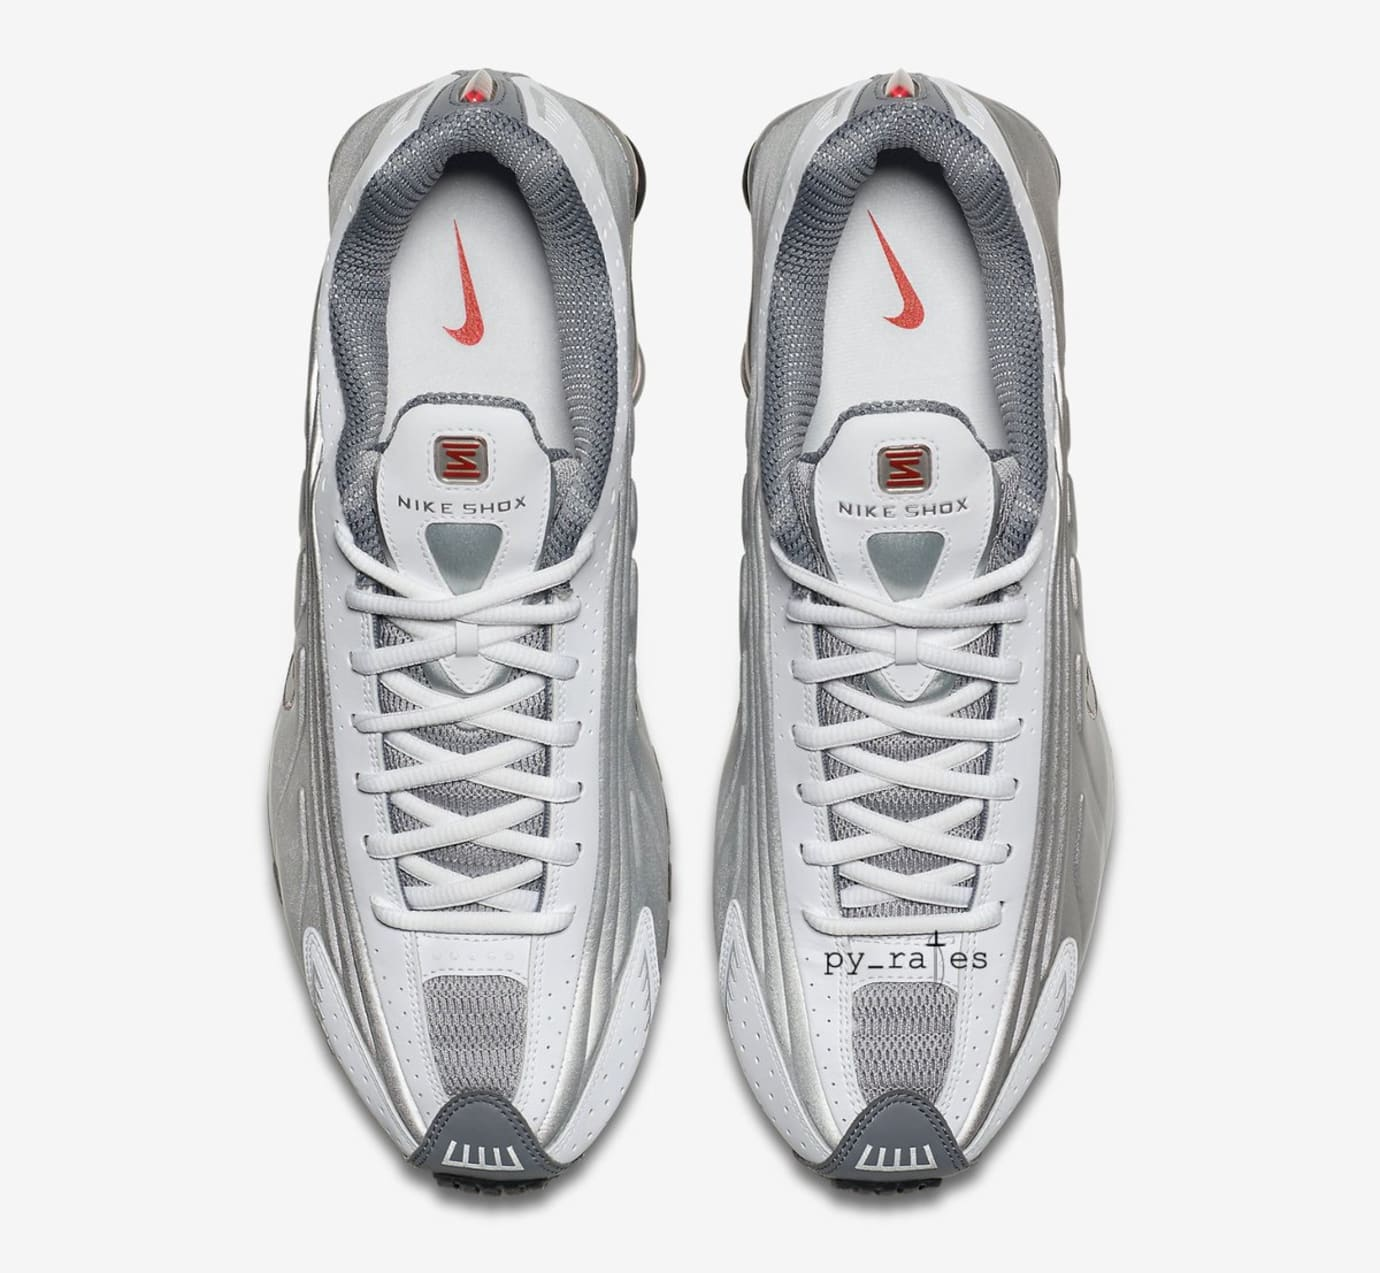 4d3691254476 Nike Shox R4  White Comet Red Black Metallic Silver  Release Date ...